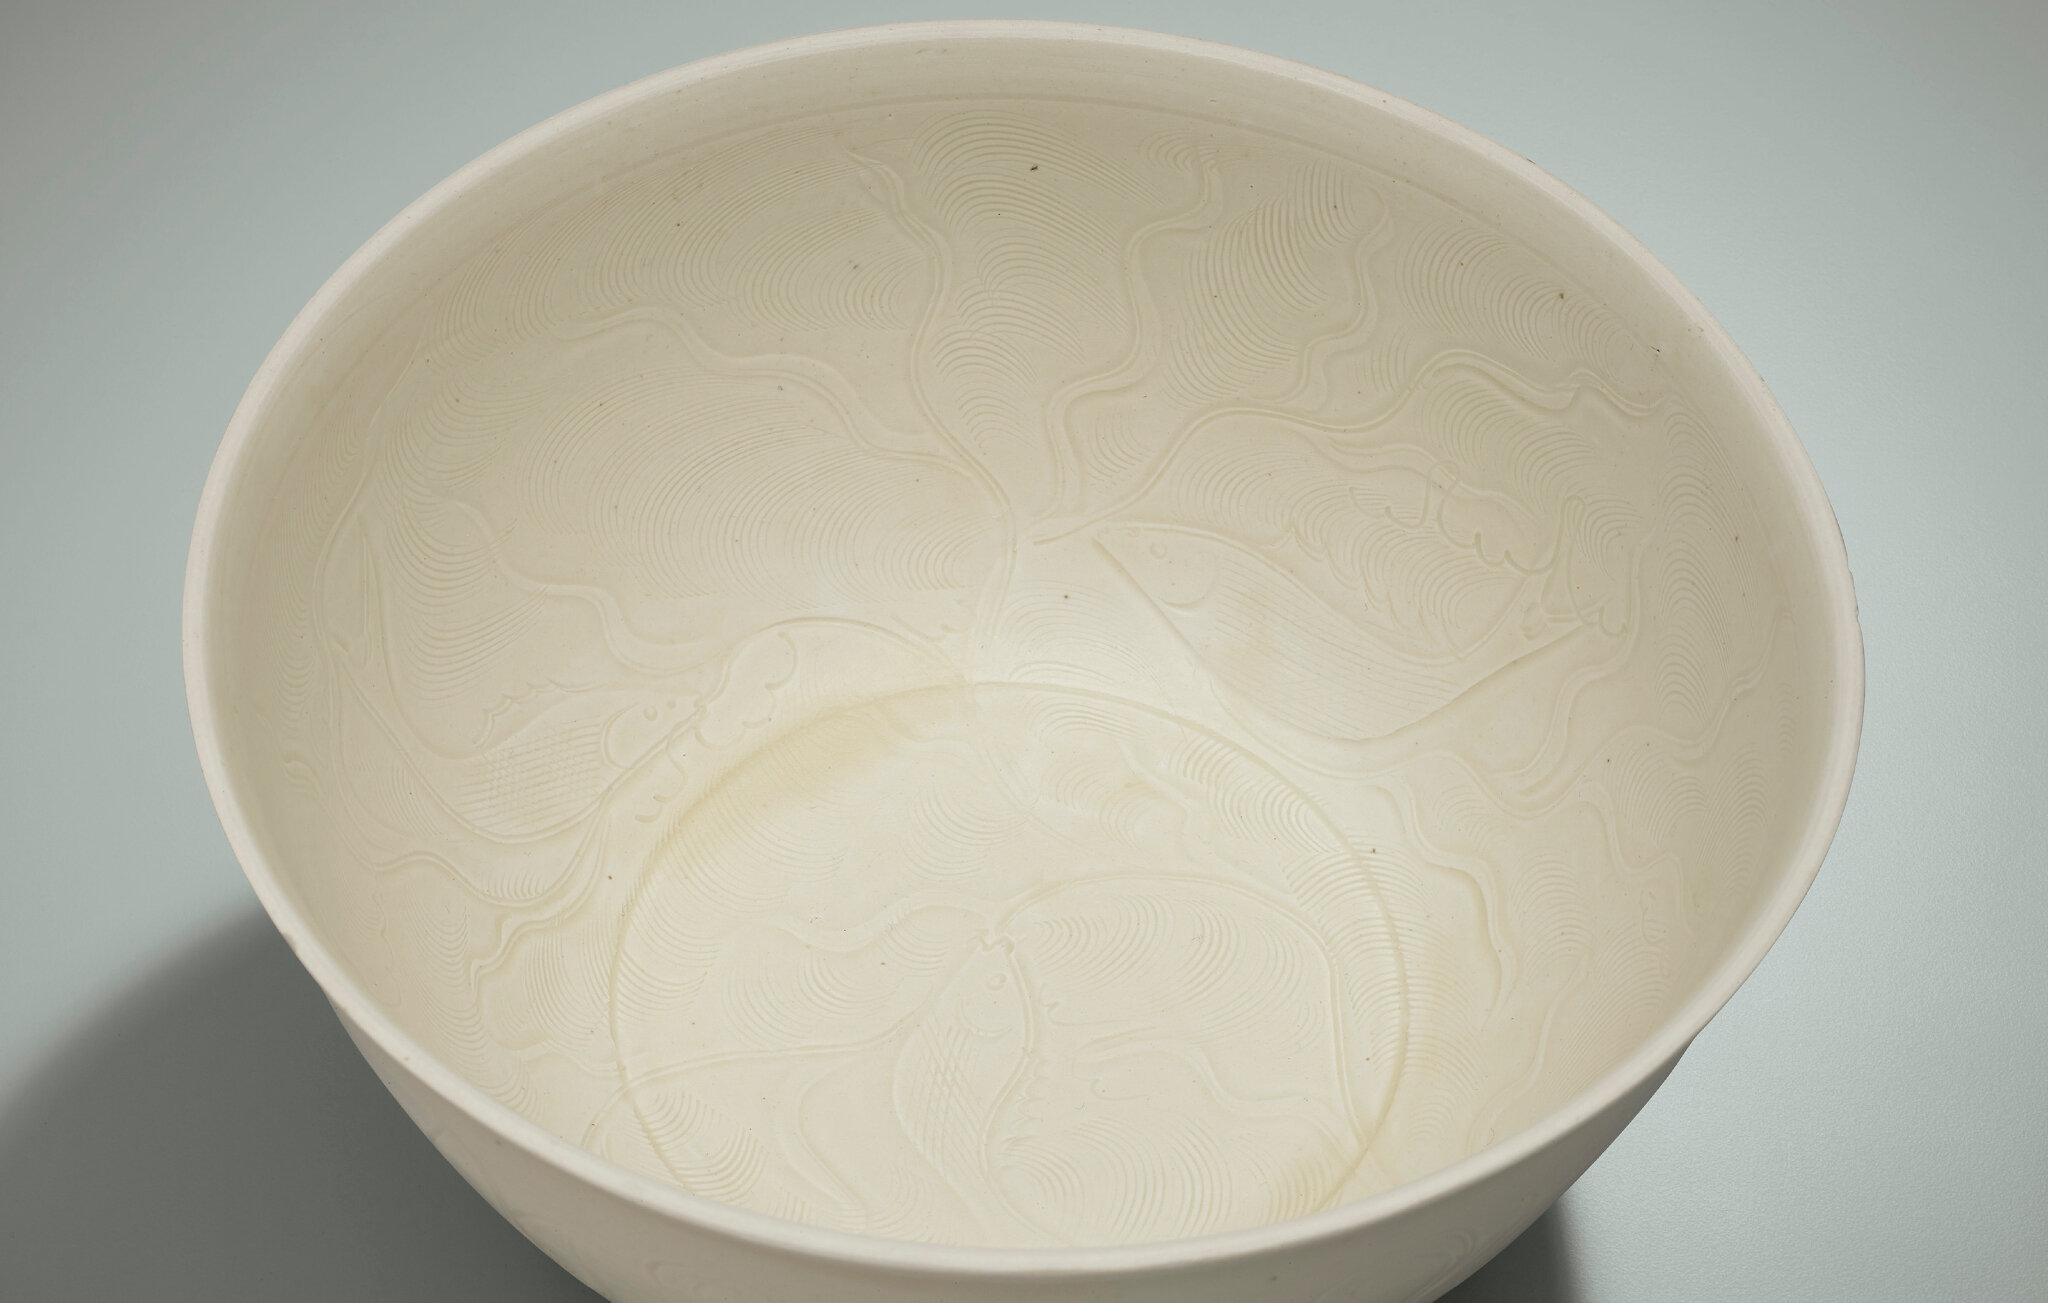 2014_HGK_03323_3212_001(a_very_rare_and_superbly_carved_large_ding_bowl_northern_song_dynasty)